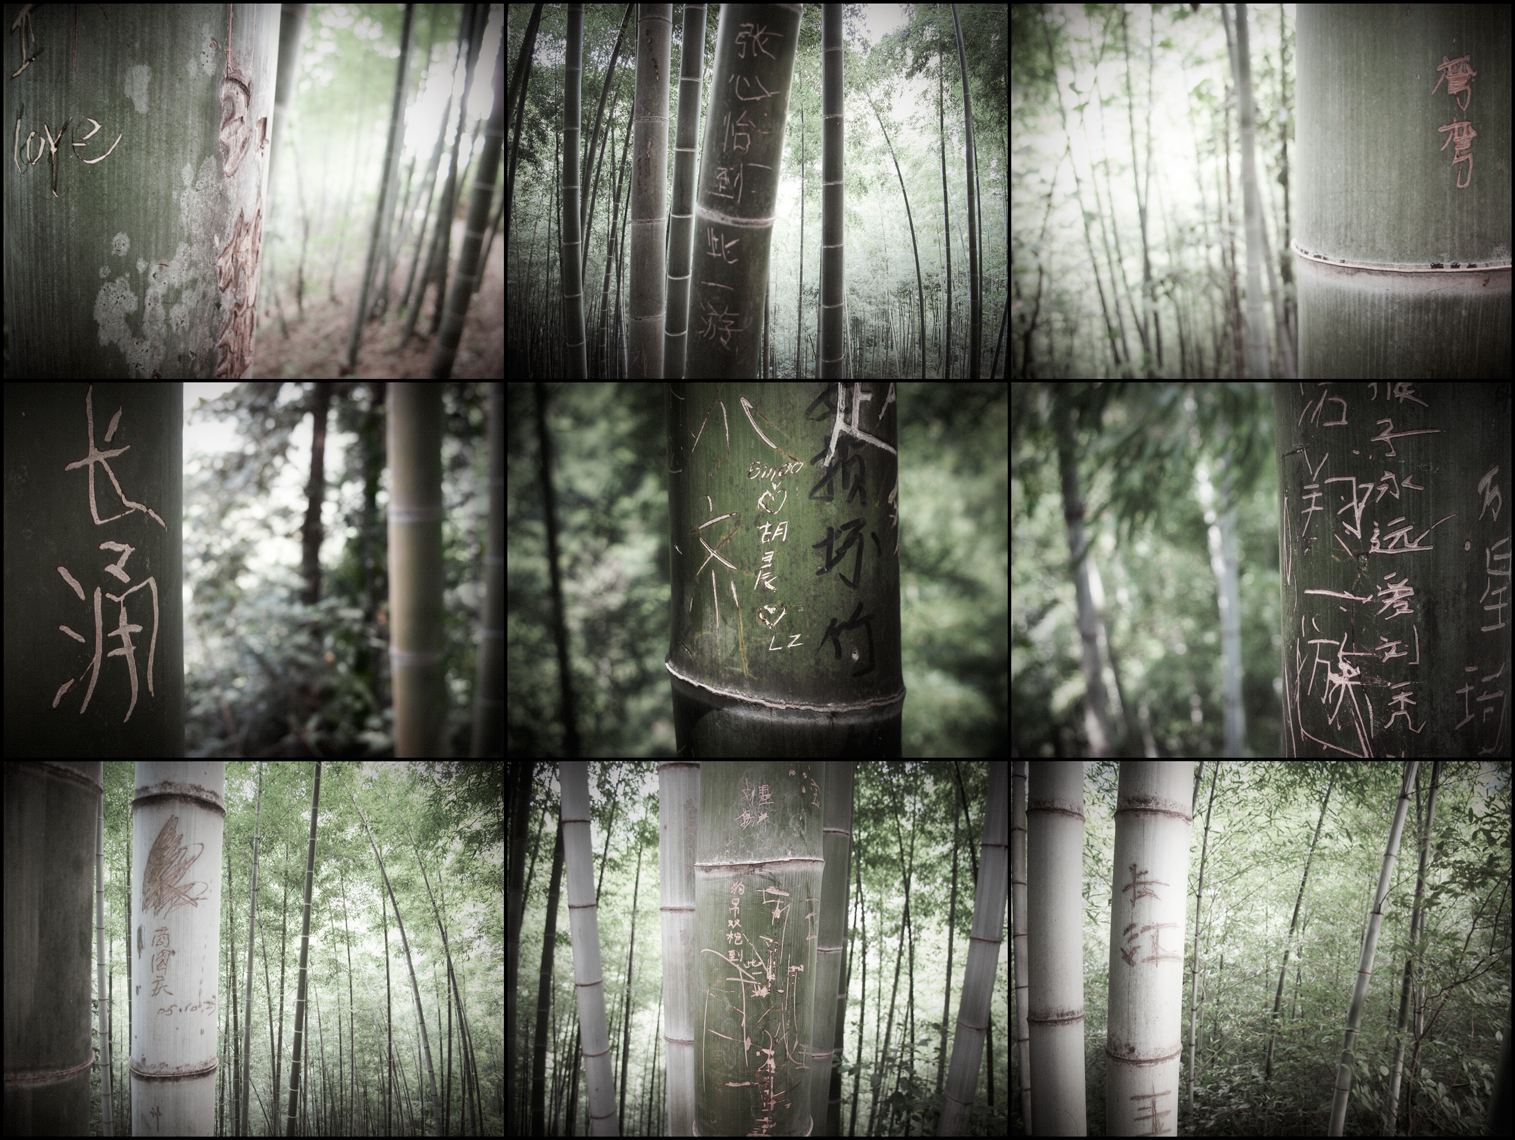 Jon Wyatt Photography - The Lost Library I - Graffiti on bamboo in bamboo forest in China